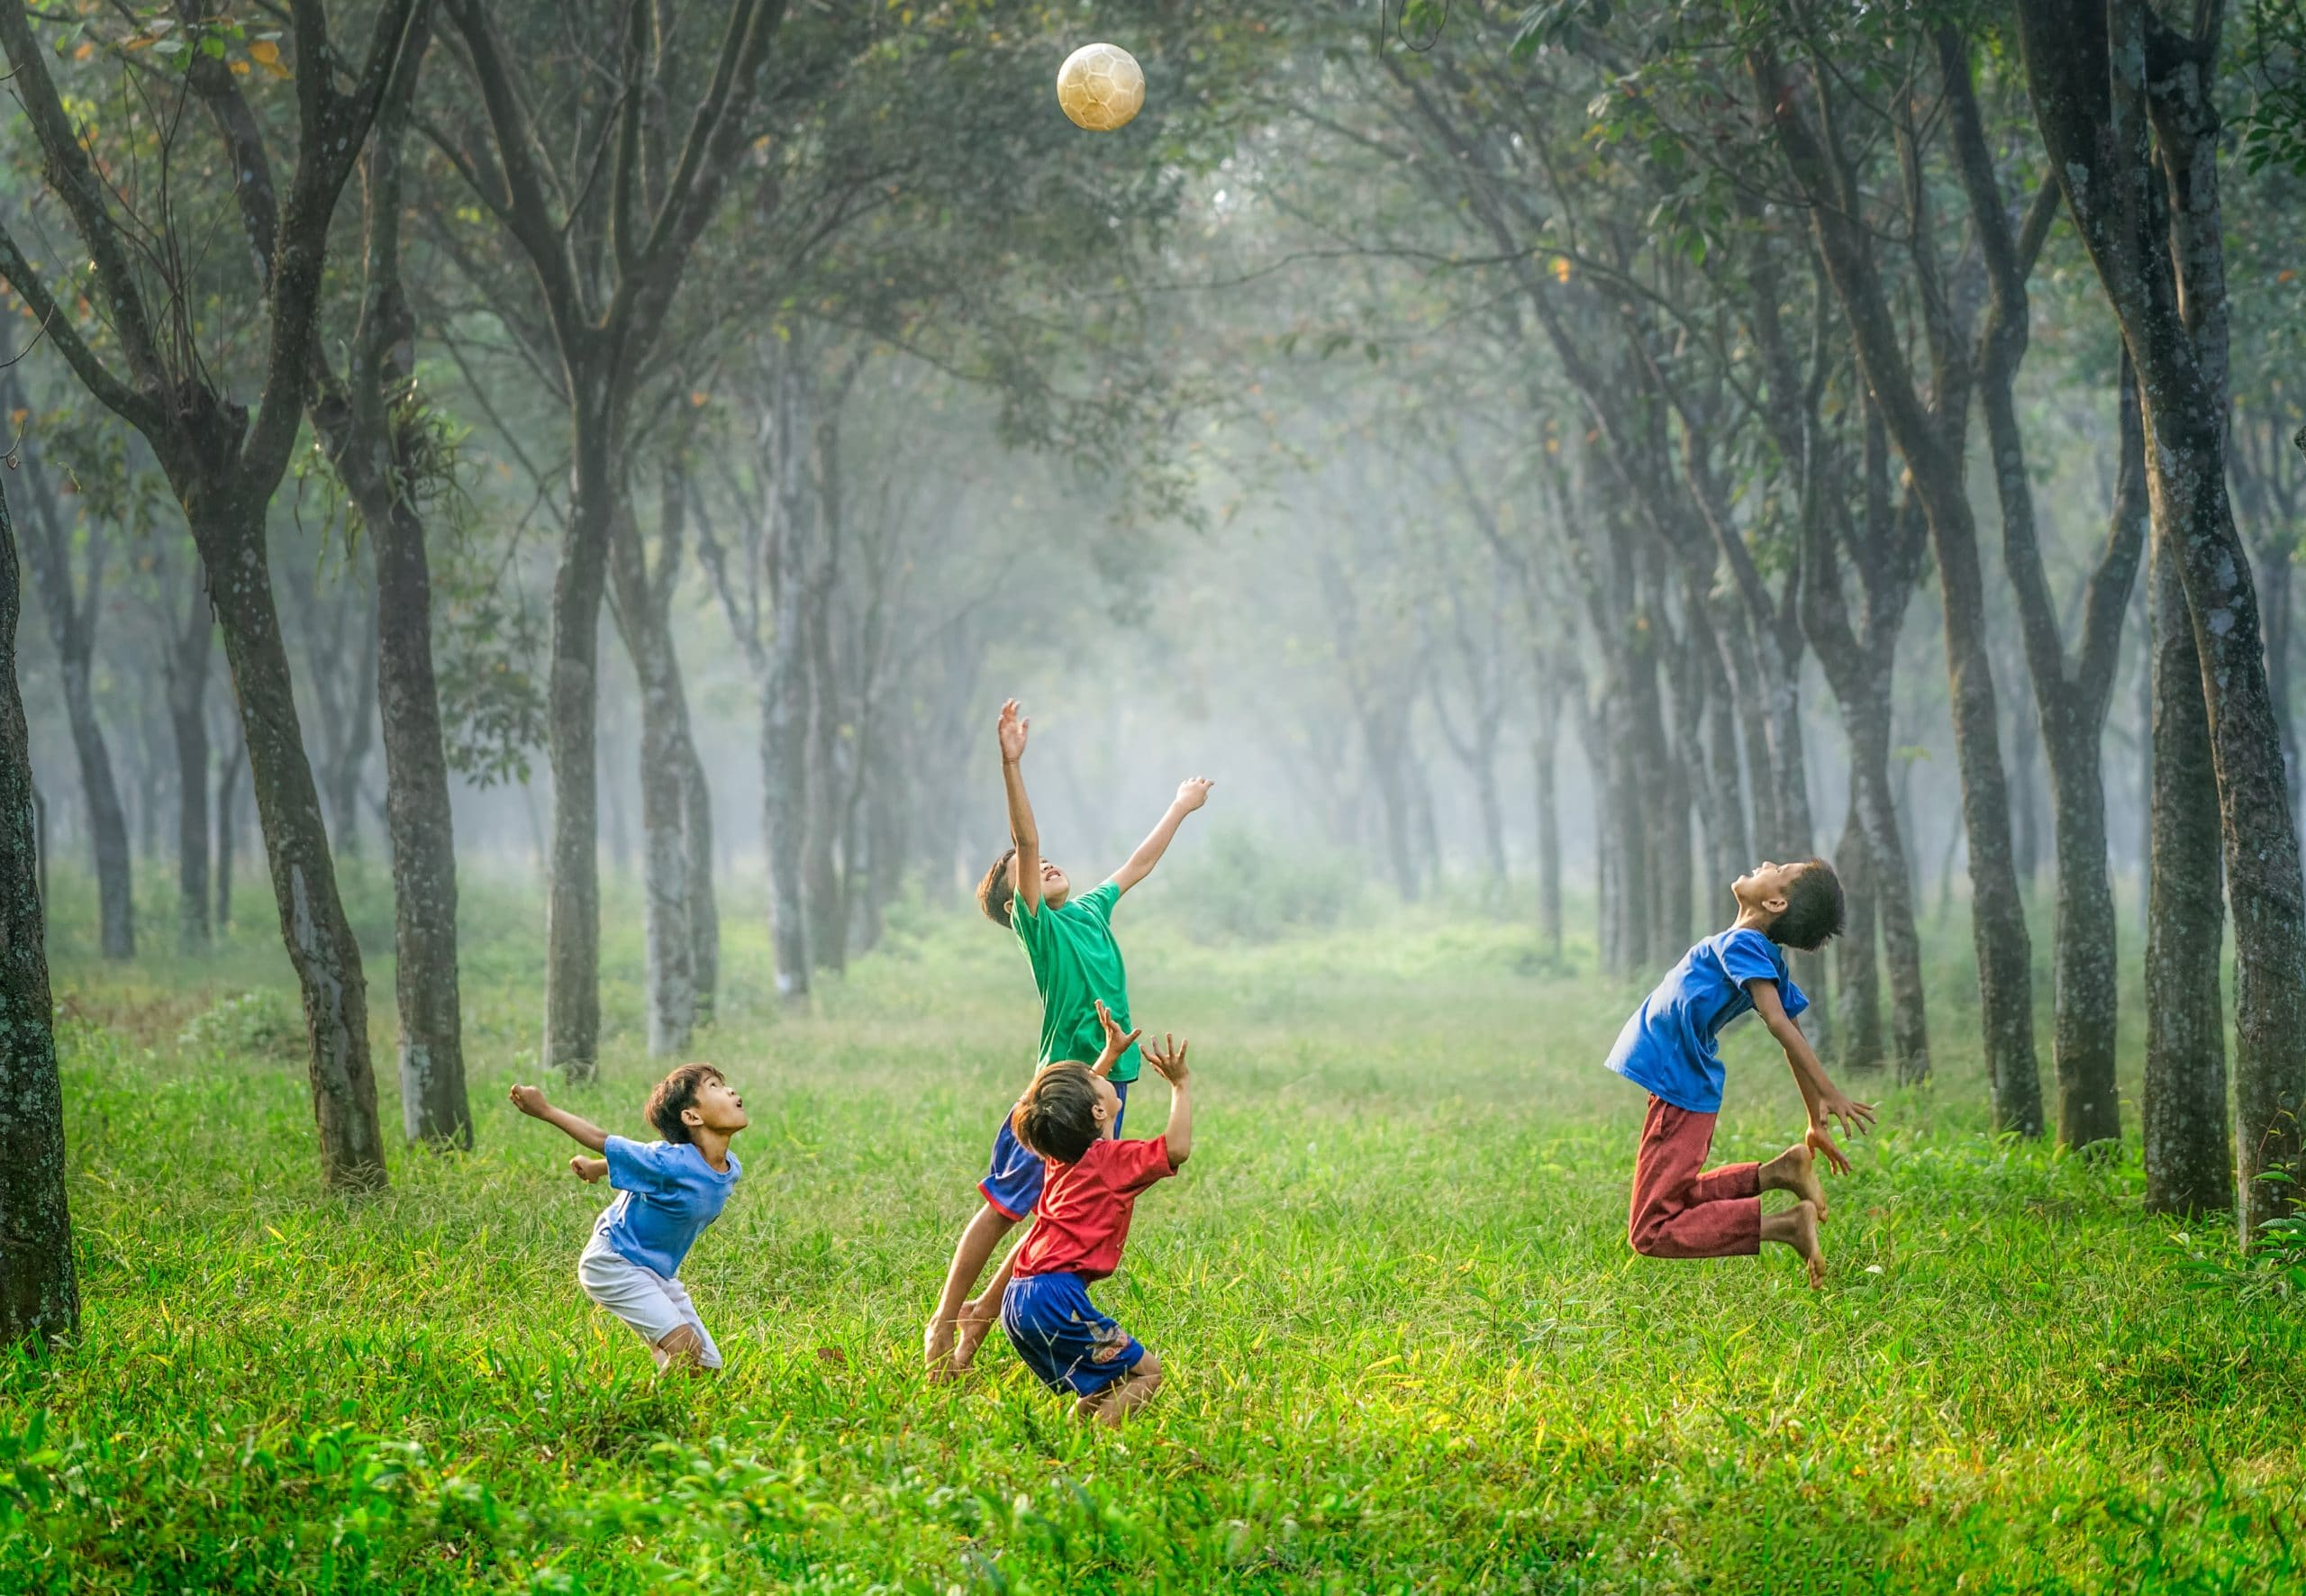 How lack of exercise affects kids